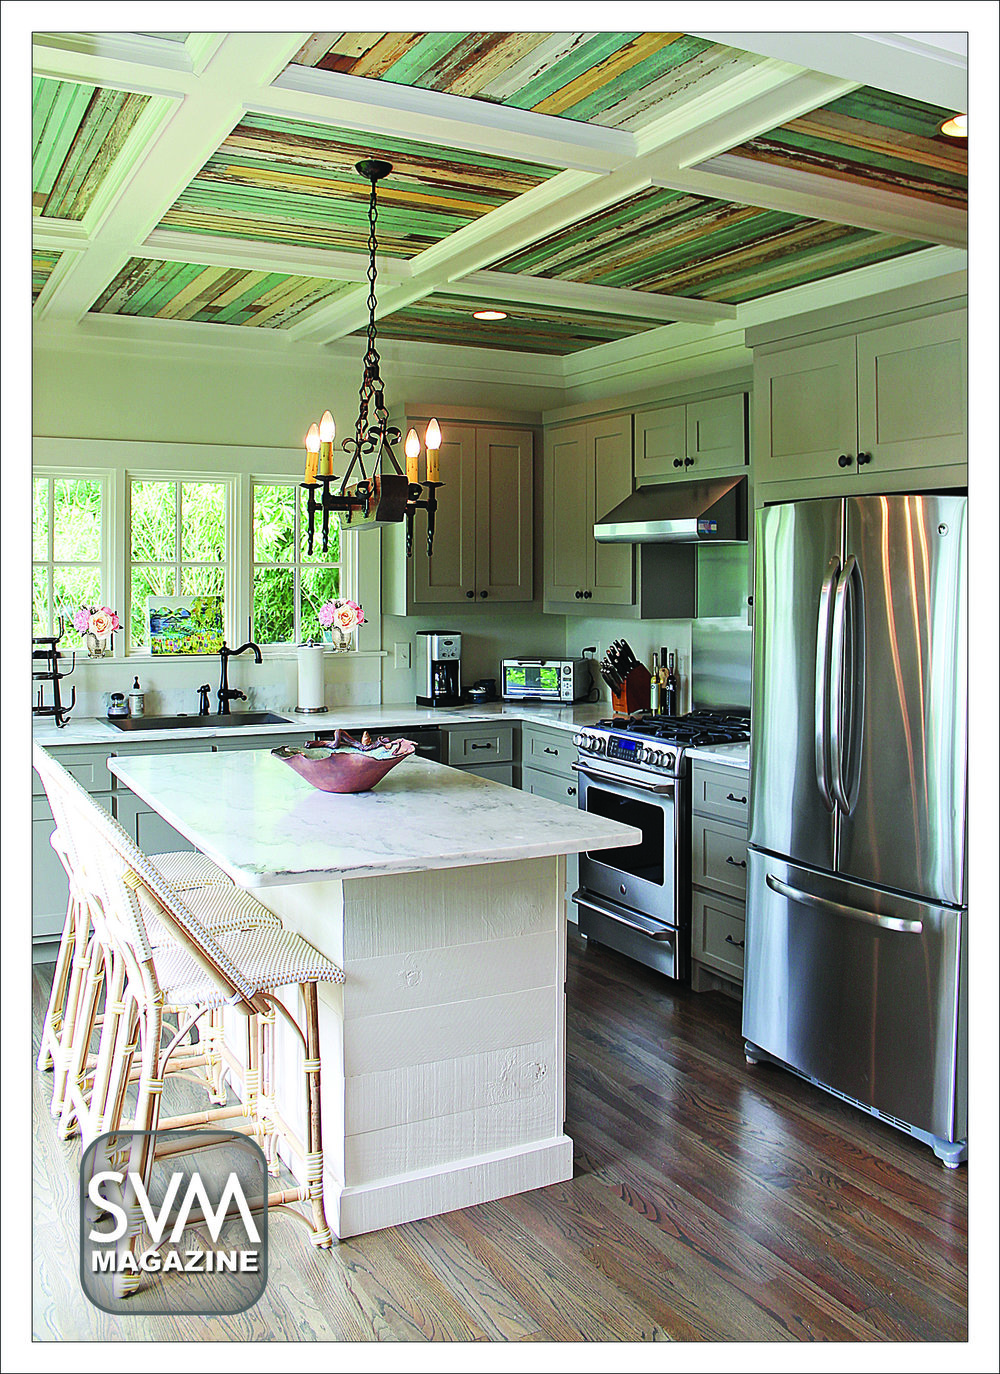 The beautiful expanded kitchen is Rachael Peek's favorite part of the house, and it's clear why. Originally an extra porch, the family enclosed the porch to create a large kitchen. The fixtures, from Ferguson Enterprises, break up the rustic pieces with modern elements. The off white cabinetry, by Braden Berendt, shows off the tall, reclaimed wood ceilings by Tim Gregory. The rustic light fixture, by The Big Chandelier, makes the marble counter tops, fabricated by Joe Waller, the belle of the ball. The stainless steel appliances are all GE from Harvey's. The kitchen bar stools from Serena & Lily offer a casual seating area for the family.